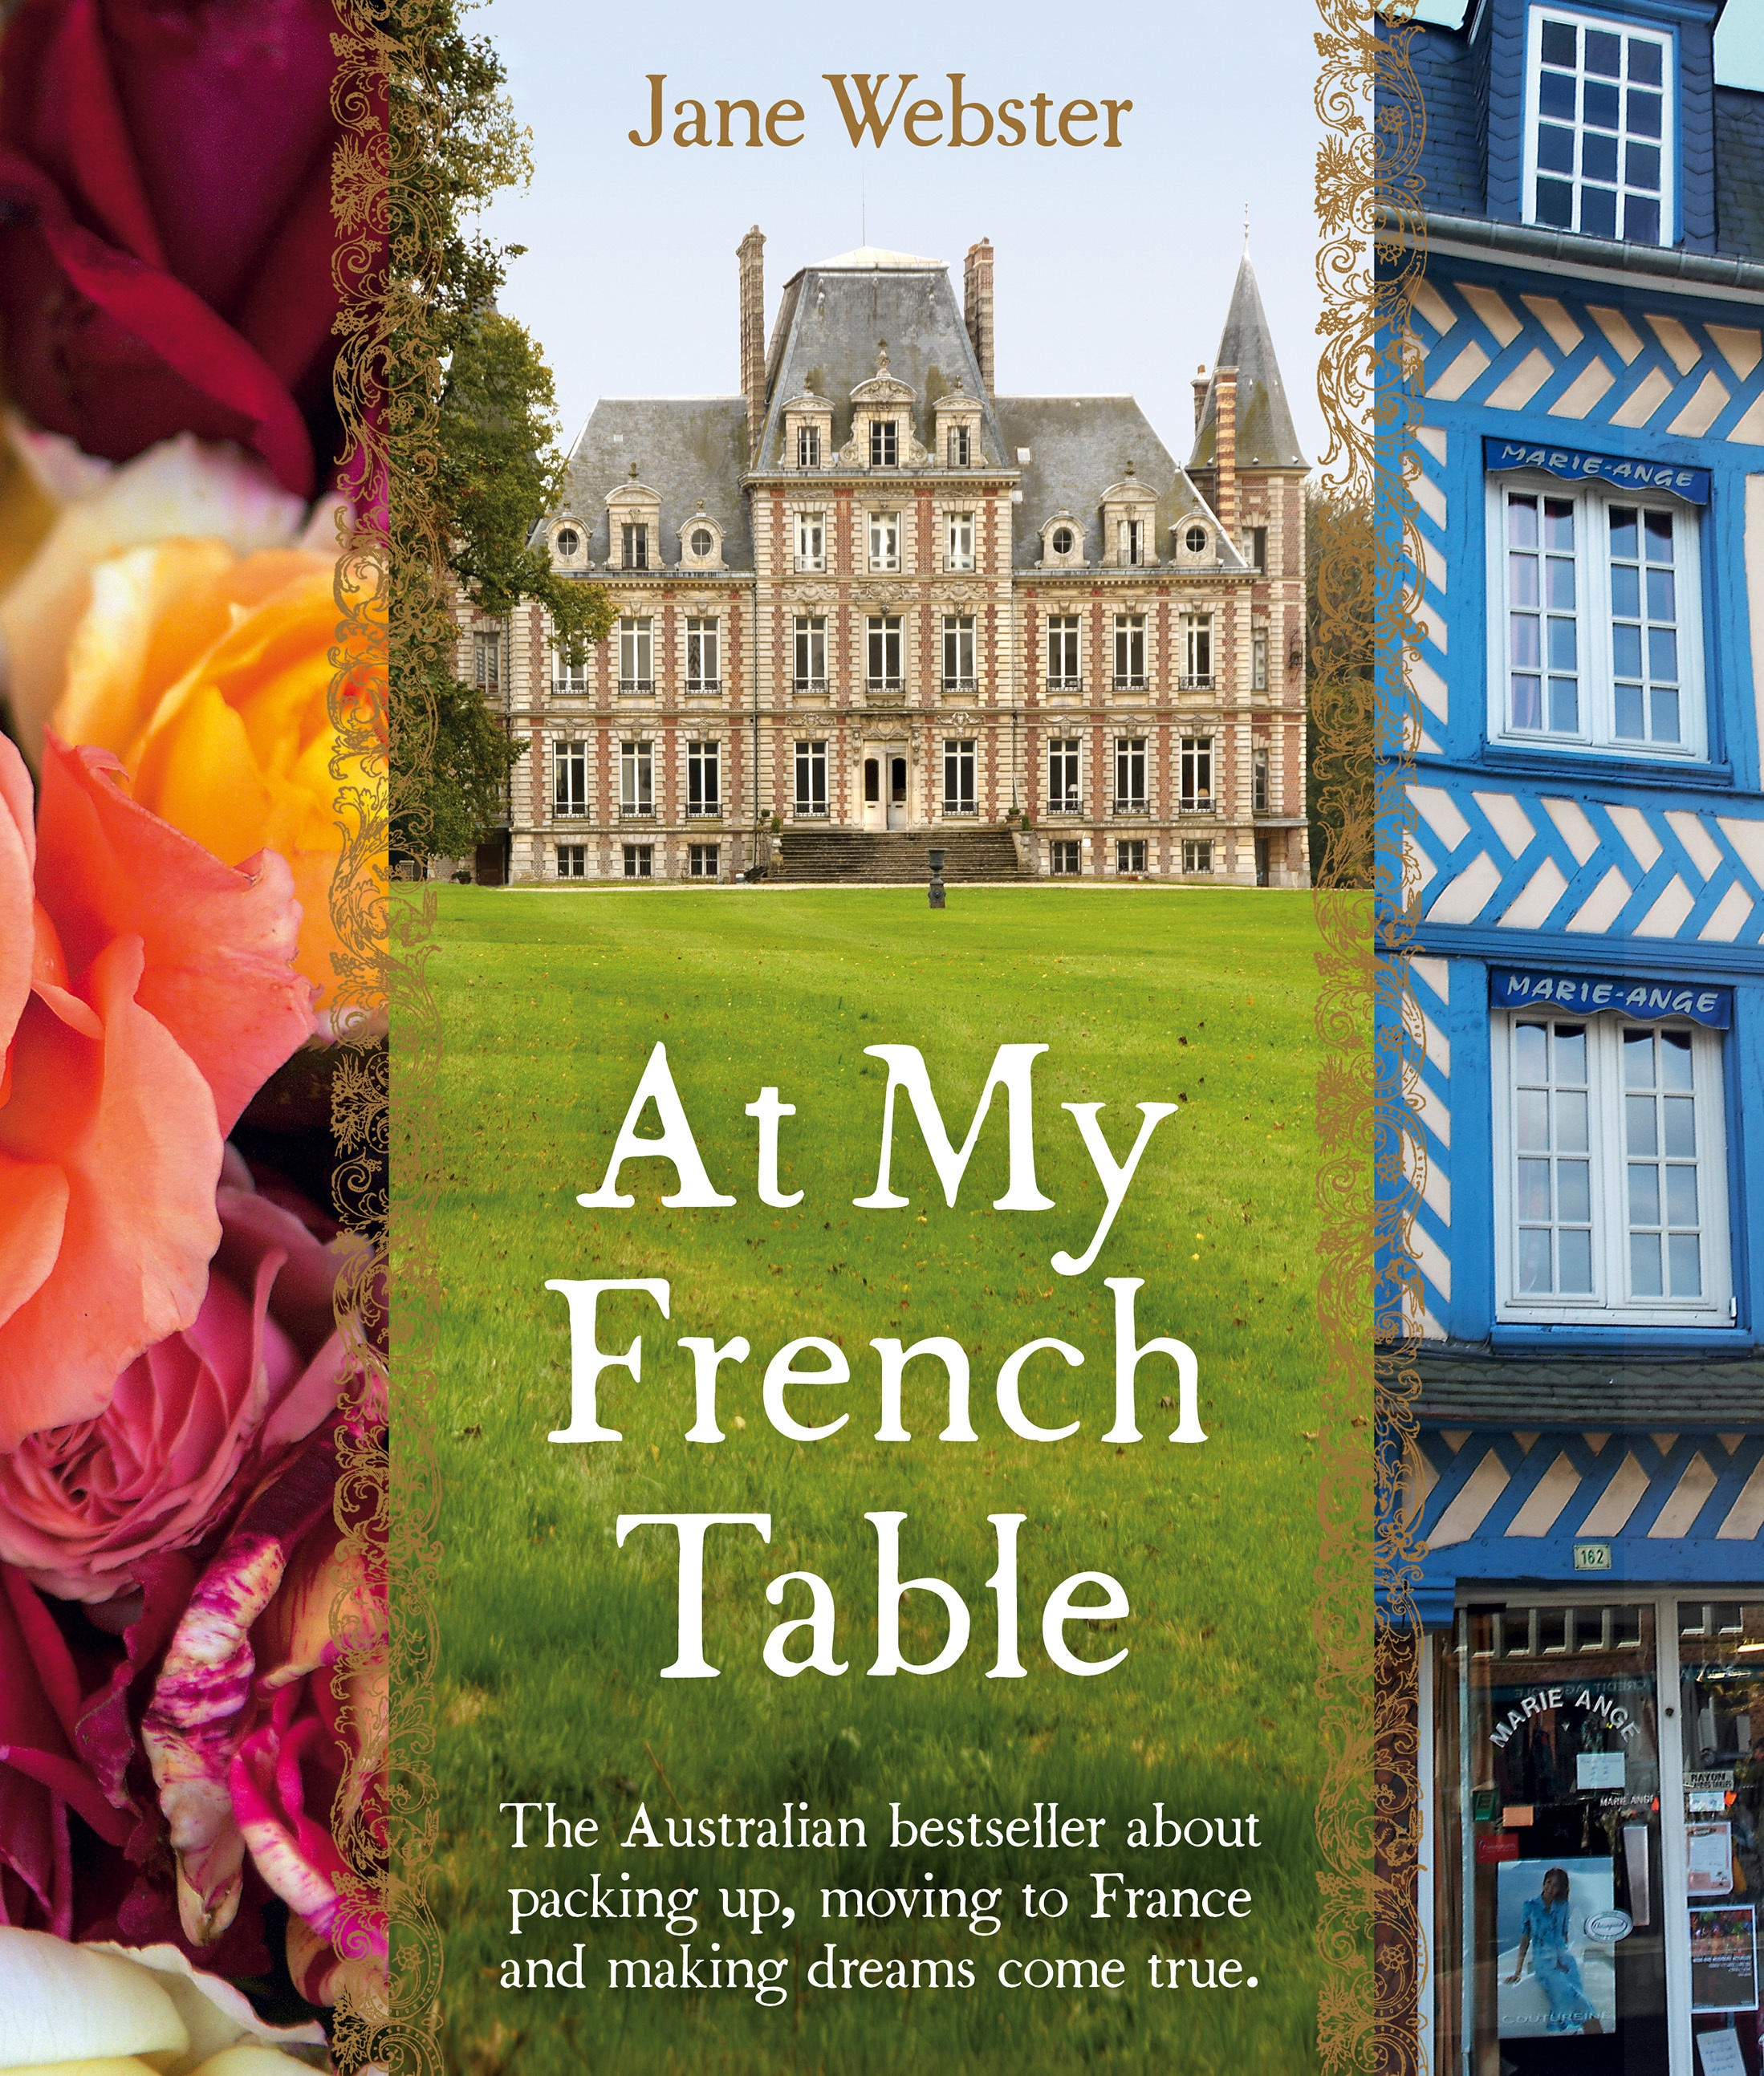 At My French Table by Jane Webster, ISBN: 9780670078240